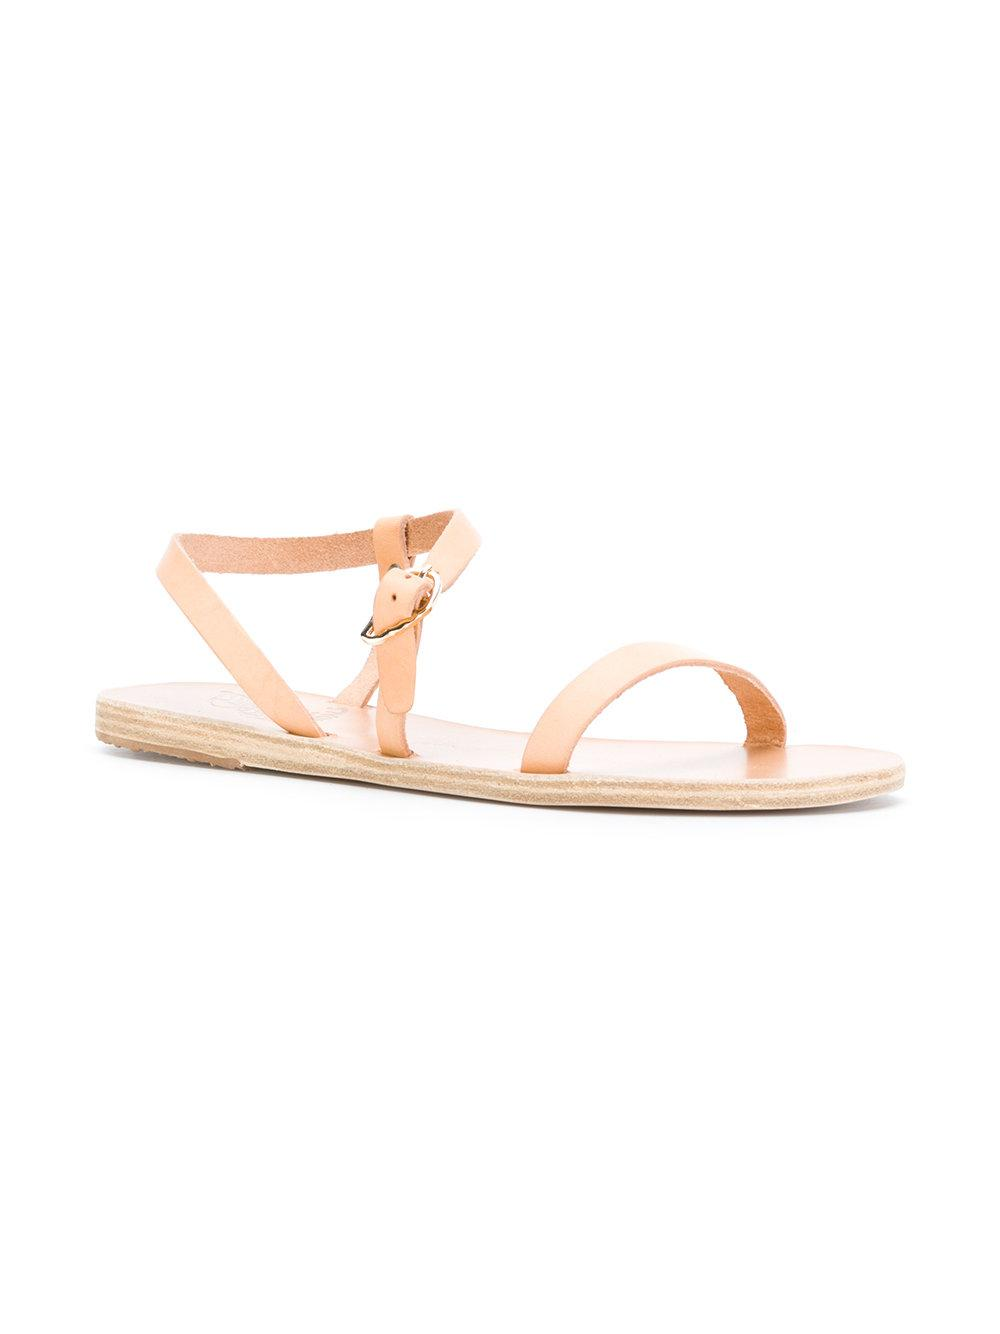 Niove flat sandals - Nude & Neutrals Ancient Greek Sandals Discount Buy Huge Surprise For Sale hbo6OR